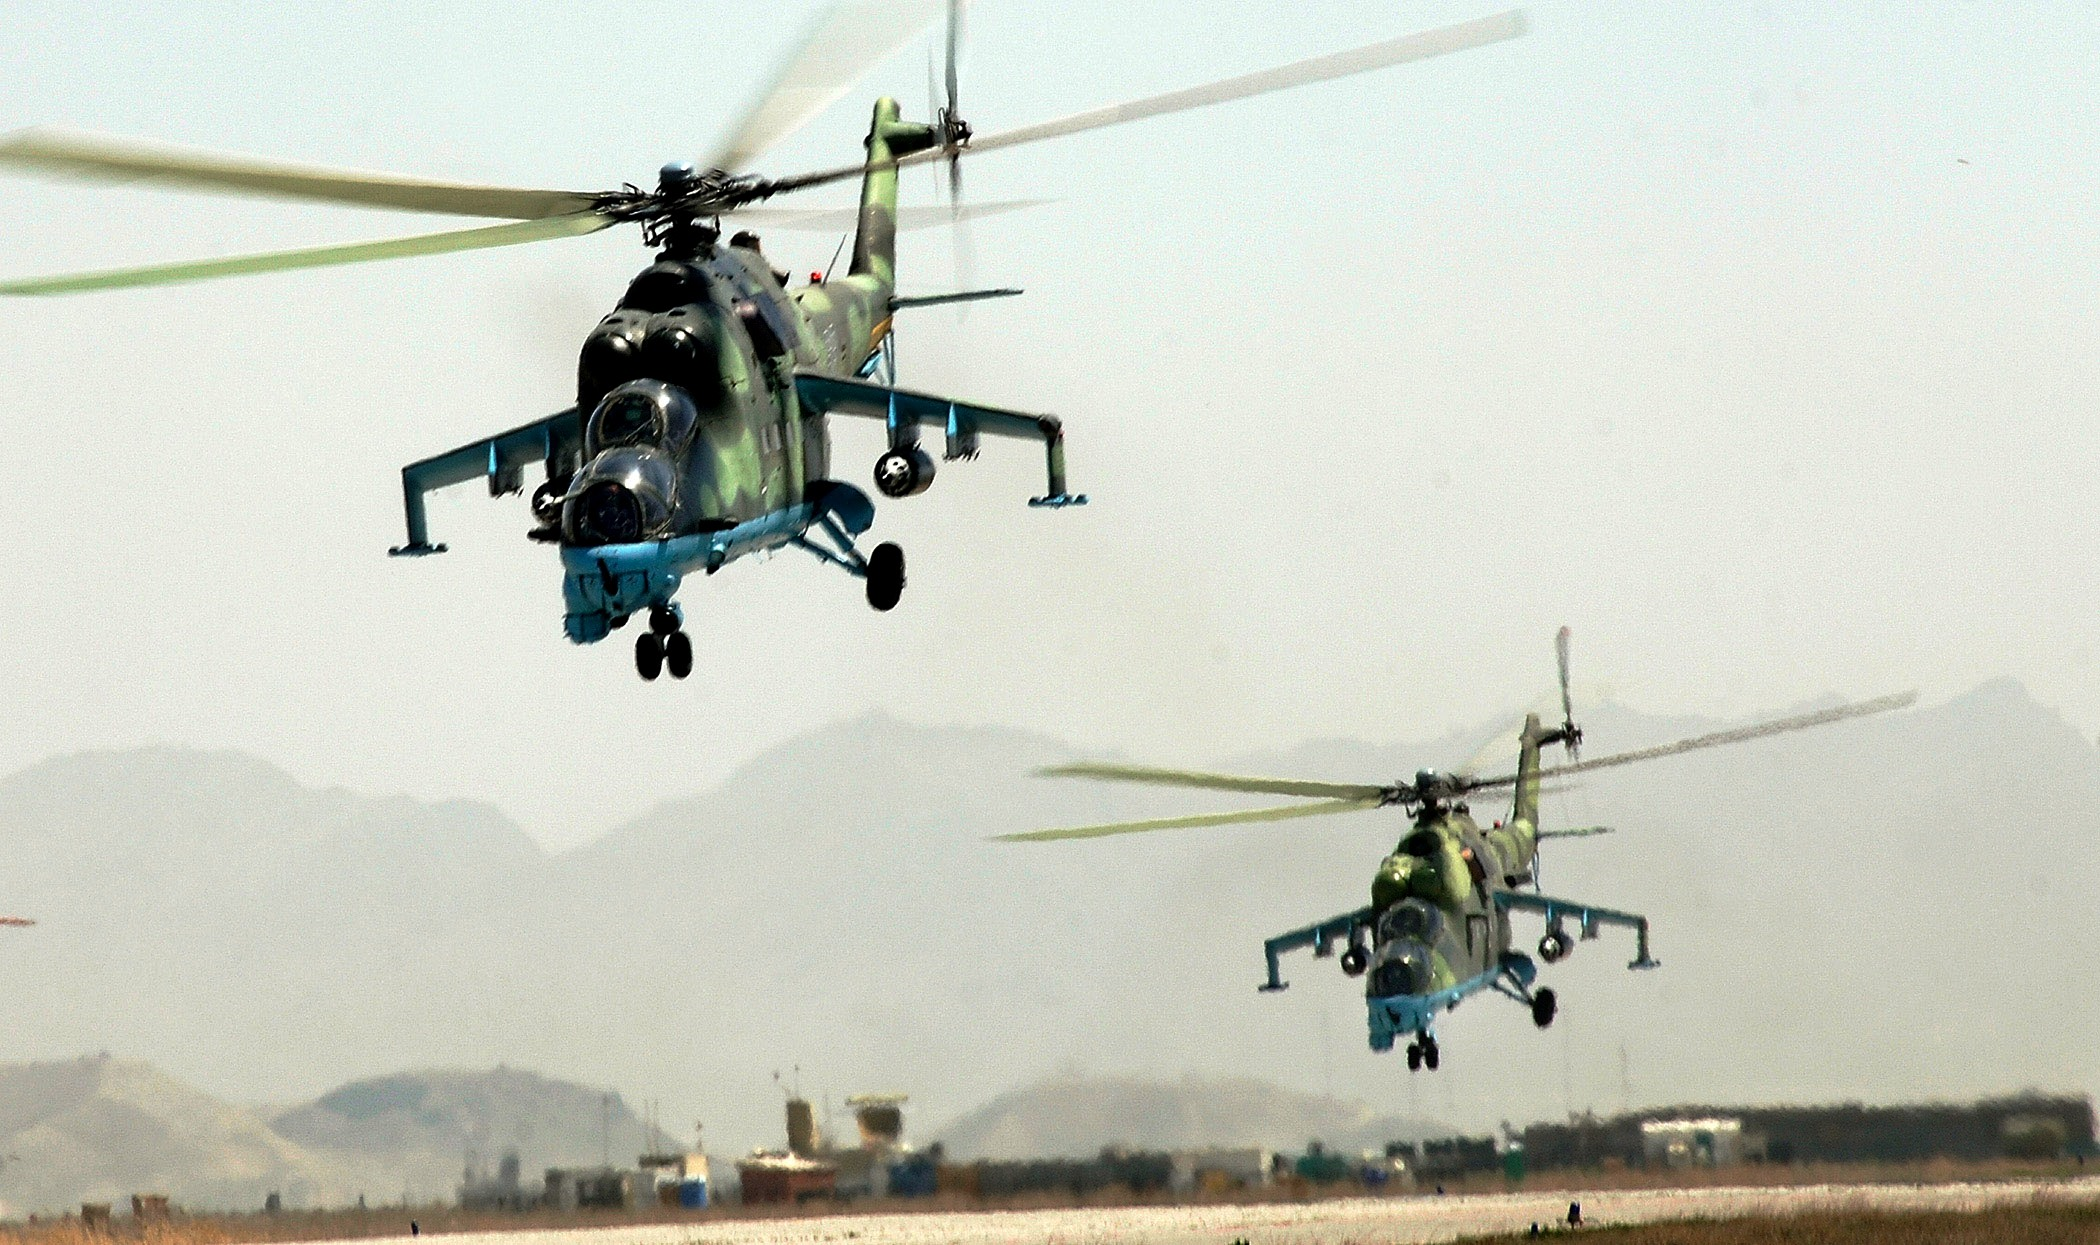 heli hire with Russia Agrees To Sell Mi 35 High Technology Helicopters To Pakistan on Helicopter chewton glen as well 337 Les Deux Alpes further Russia Agrees To Sell Mi 35 High Technology Helicopters To Pakistan together with Ch oluc Ski Resort furthermore Lord Of The Rings Mt Owen Exit From The Mines Of Moria.